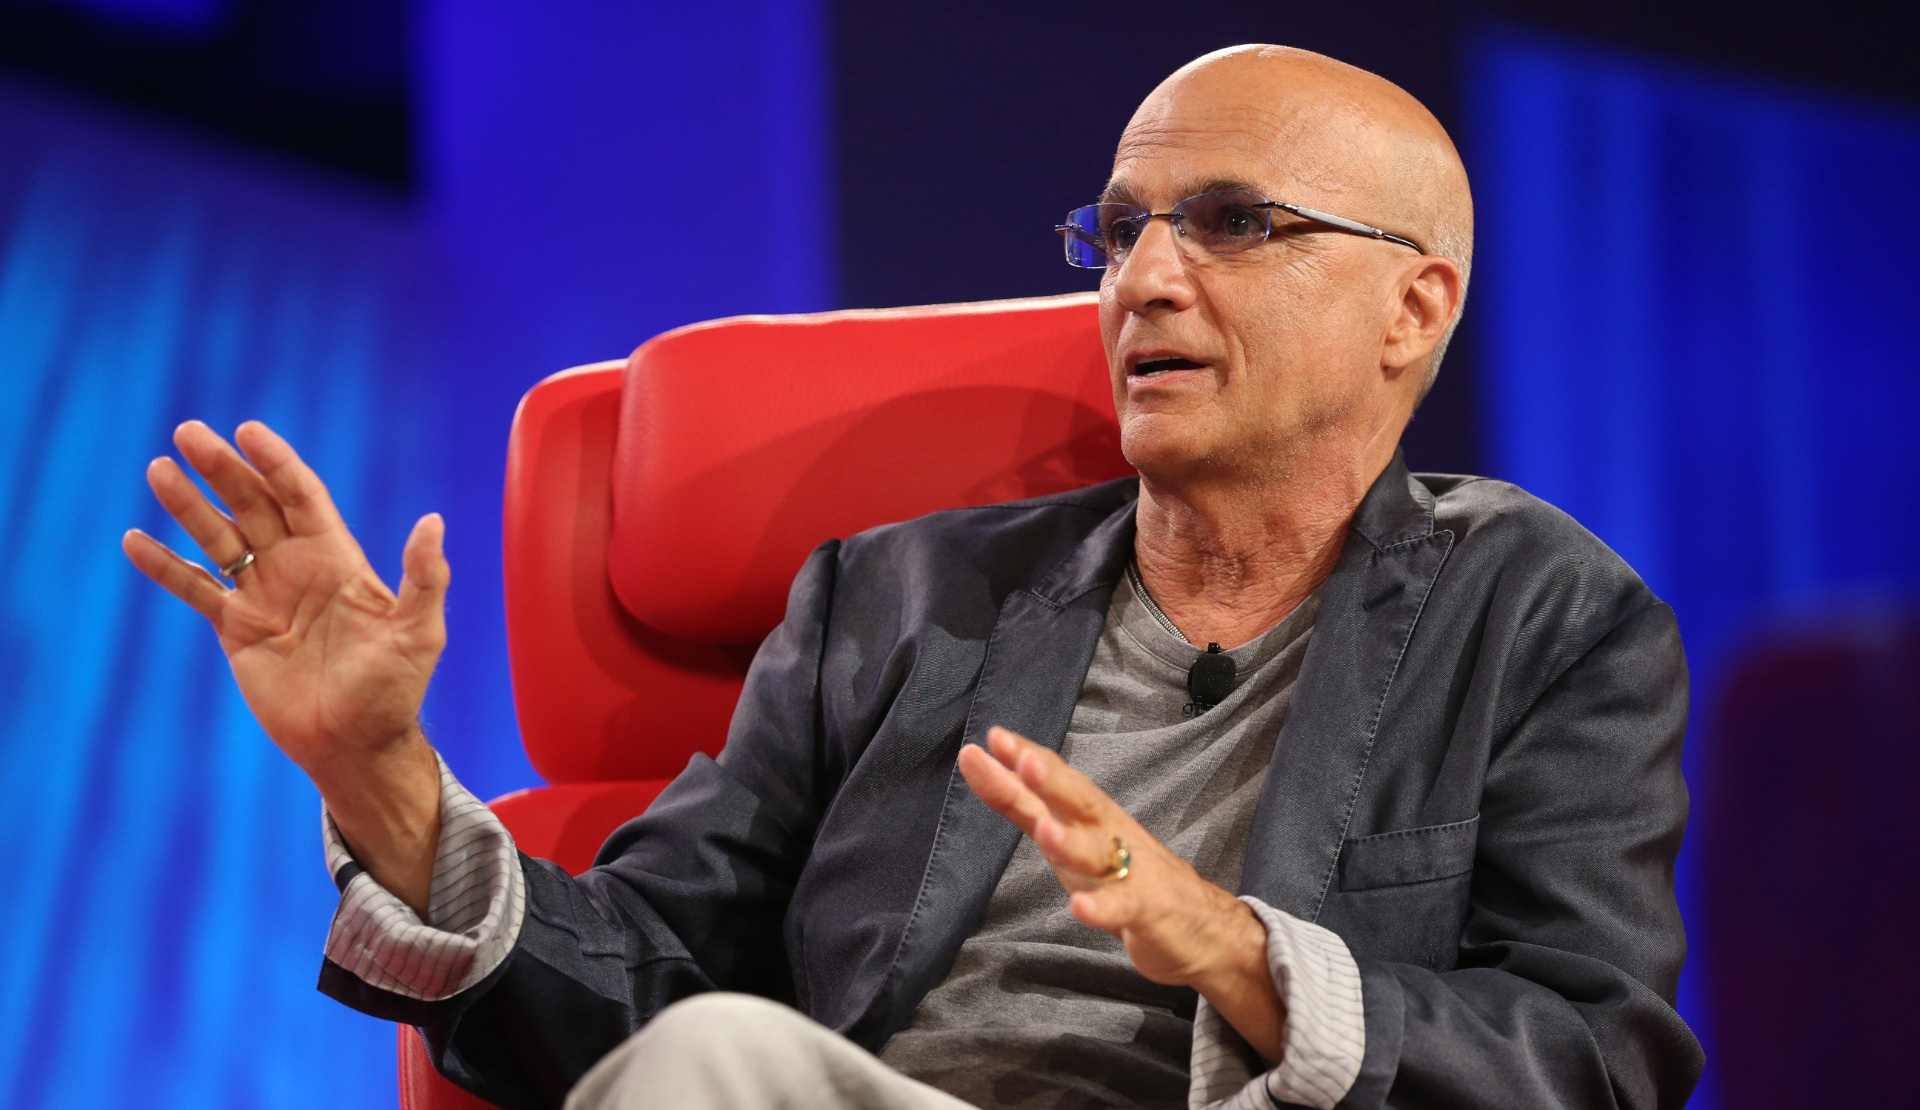 Apple's Jimmy Iovine says human curation could work for TV